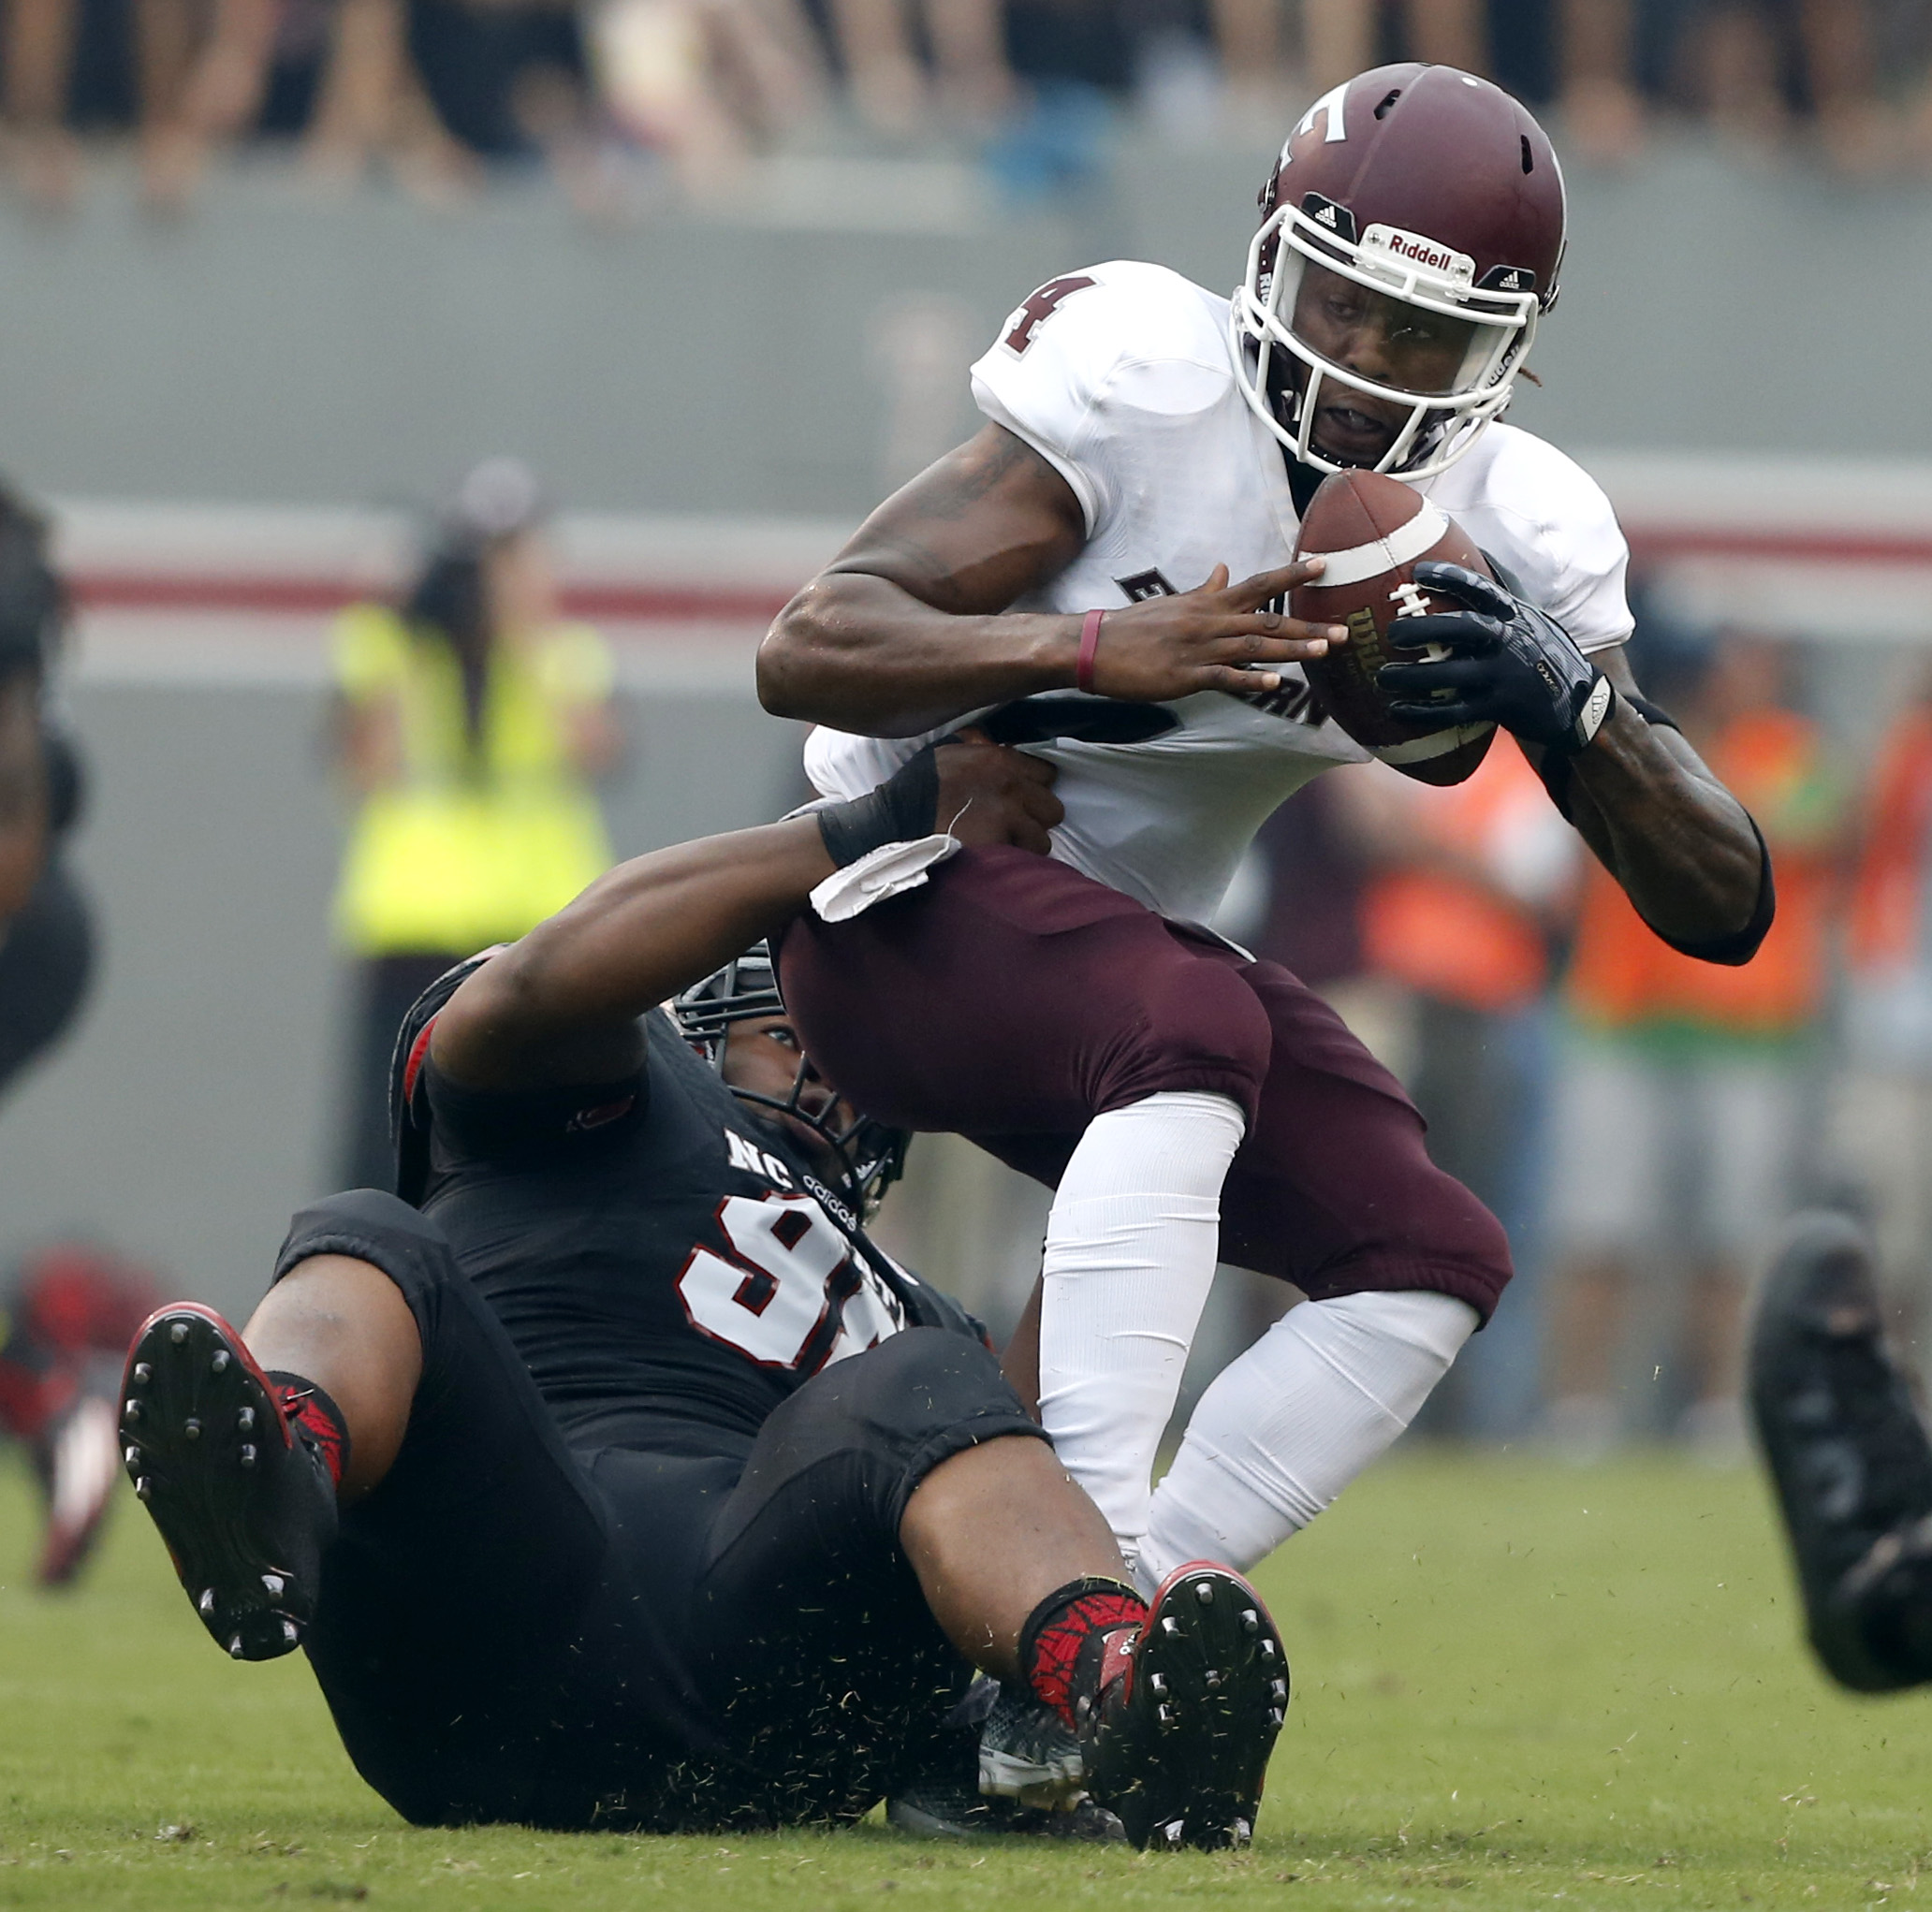 North Carolina State defensive tackle B.J. Hill (98) grabs Eastern Kentucky quarterback Bennie Coney (4) during the first half of an NCAA college football game Saturday, Sept. 12, 2015, in Raleigh, N.C. (Ethan Hyman/The News & Observer via AP) MANDATORY C